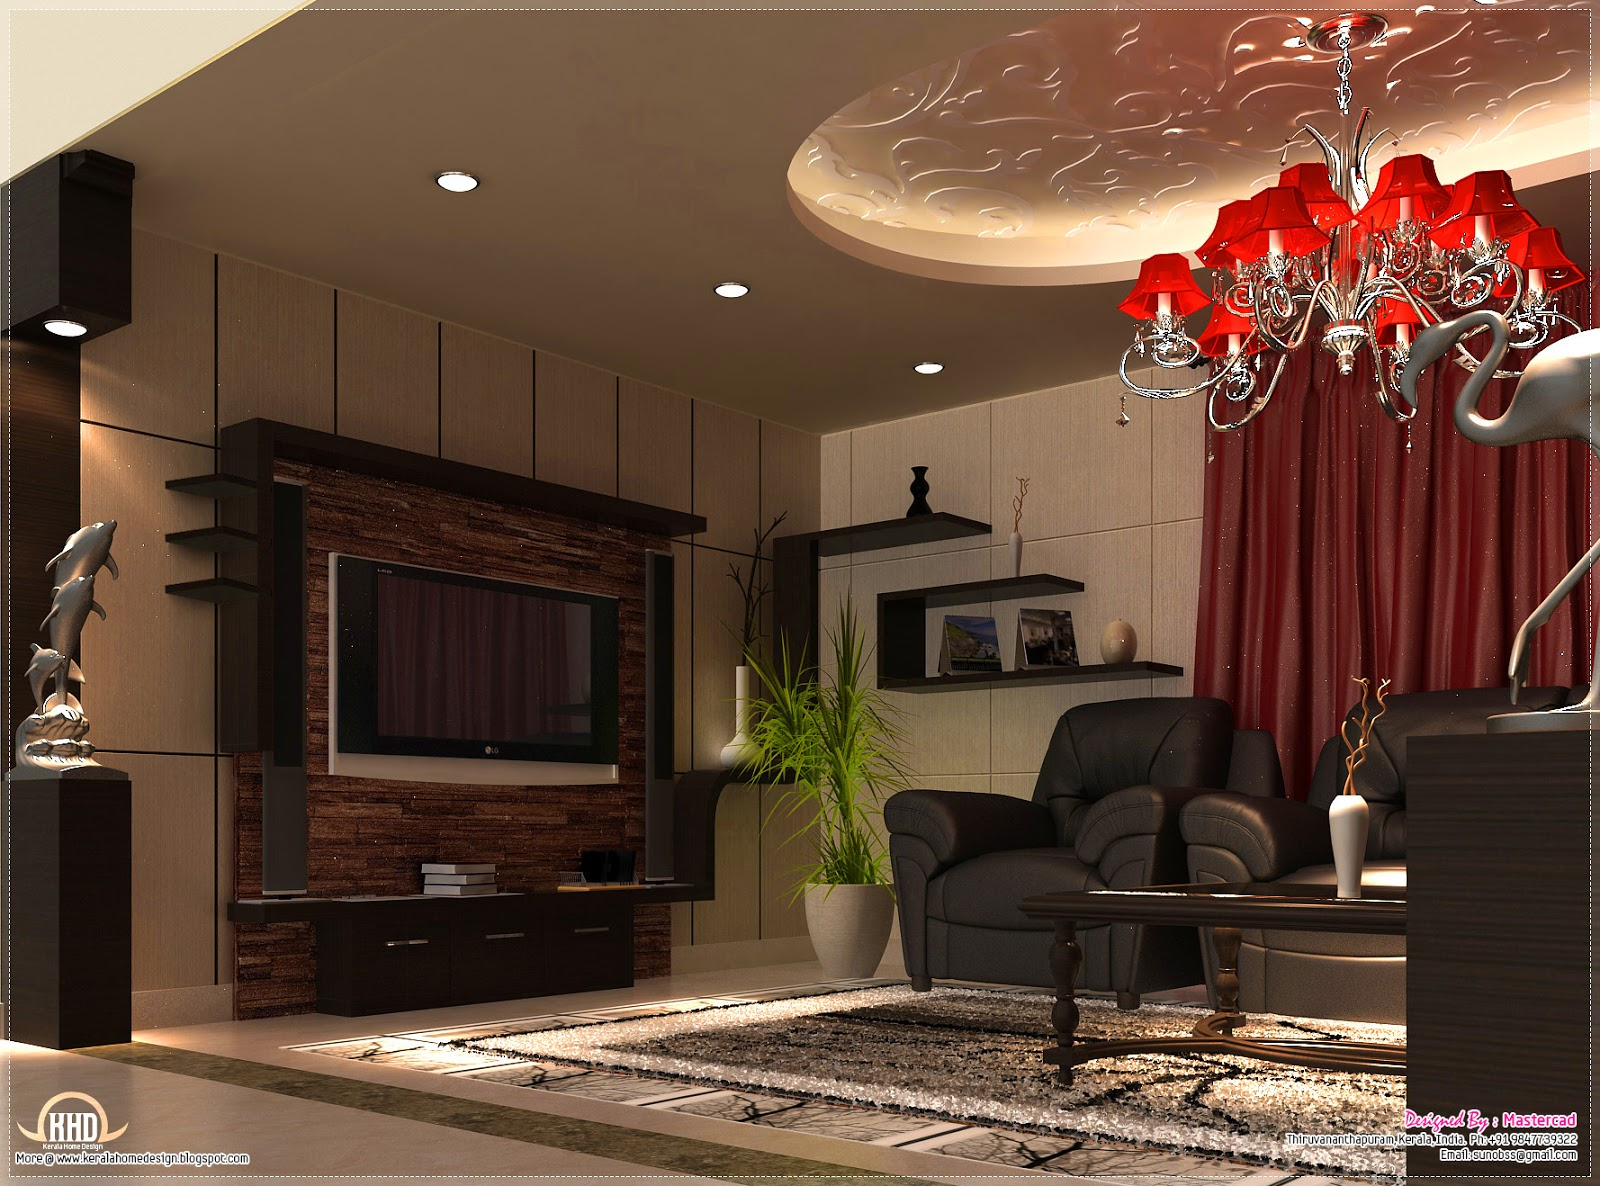 Interior design ideas kerala home design and floor plans - Home decor with interior design ...